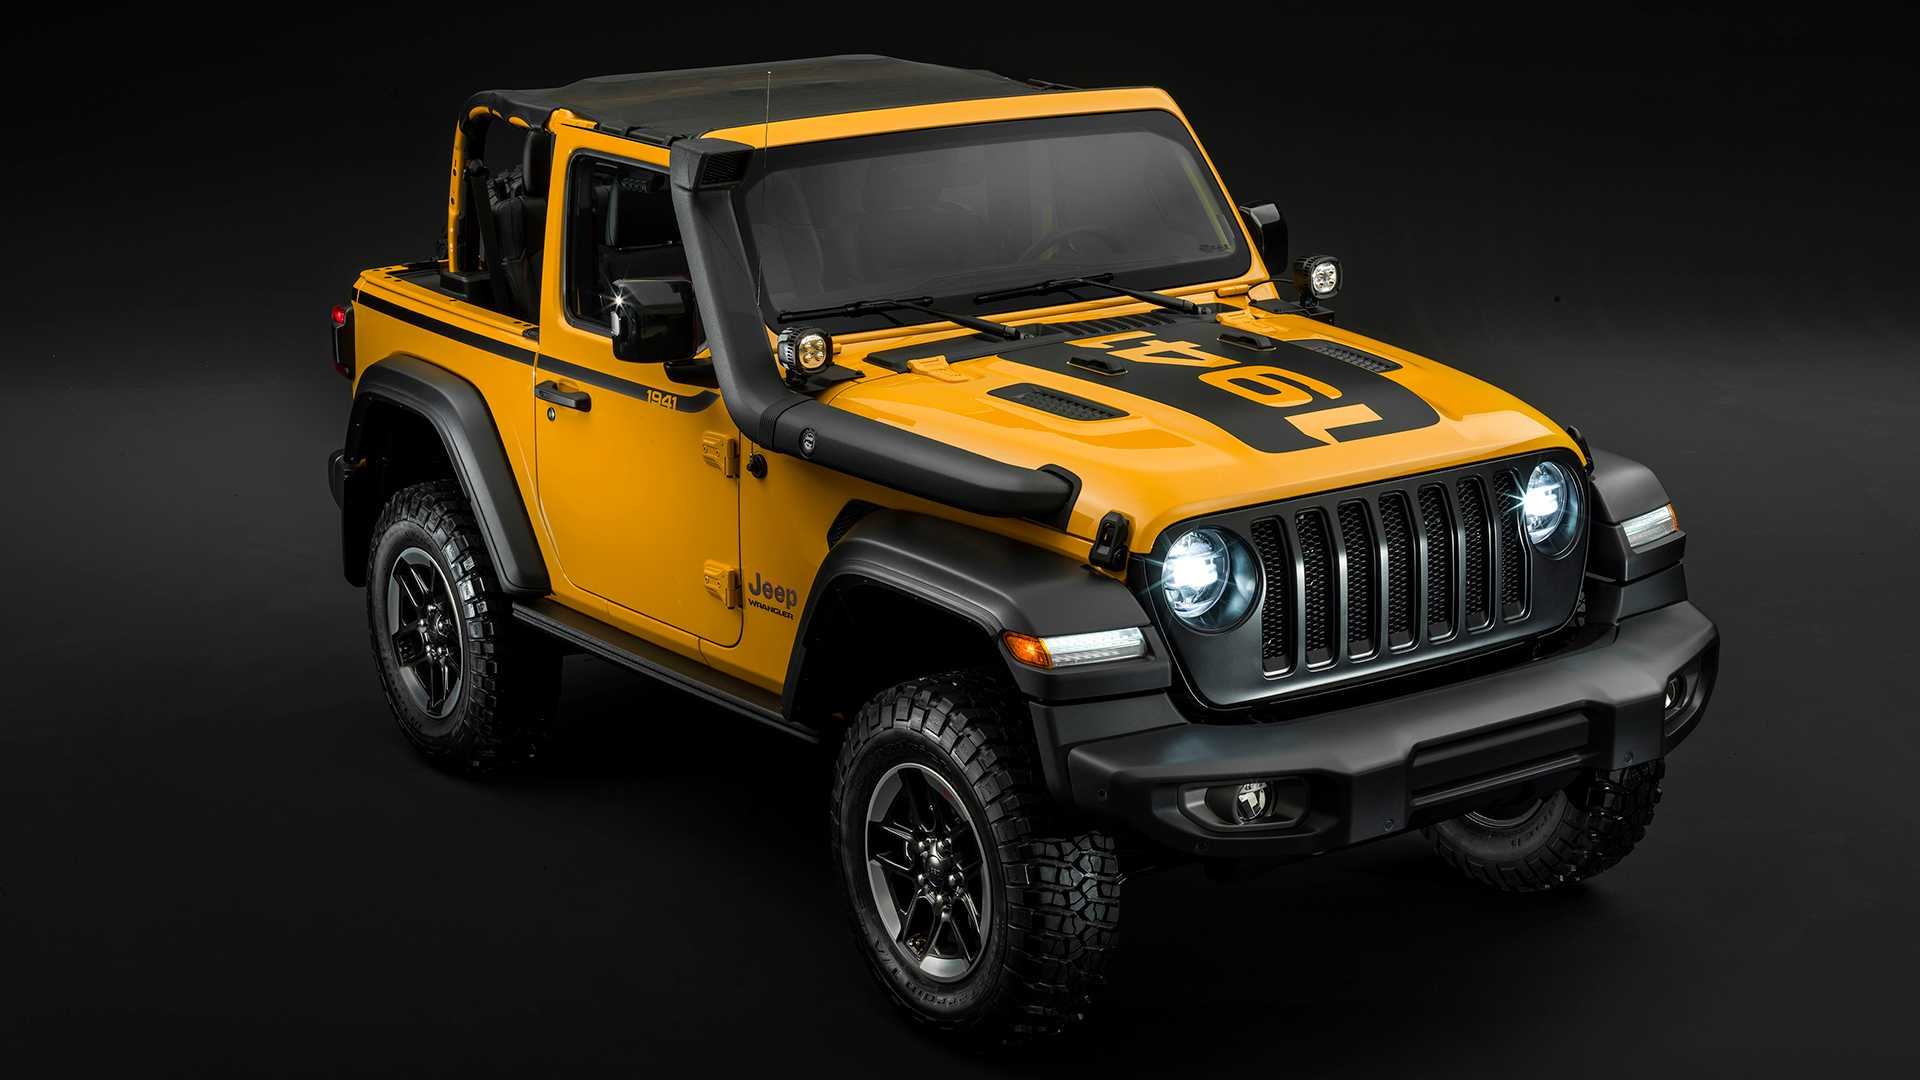 2019 Jeep Wrangler: News, Design, Equippment >> Jeep Wrangler Rubicon 1941 Edition Storms Europe Again